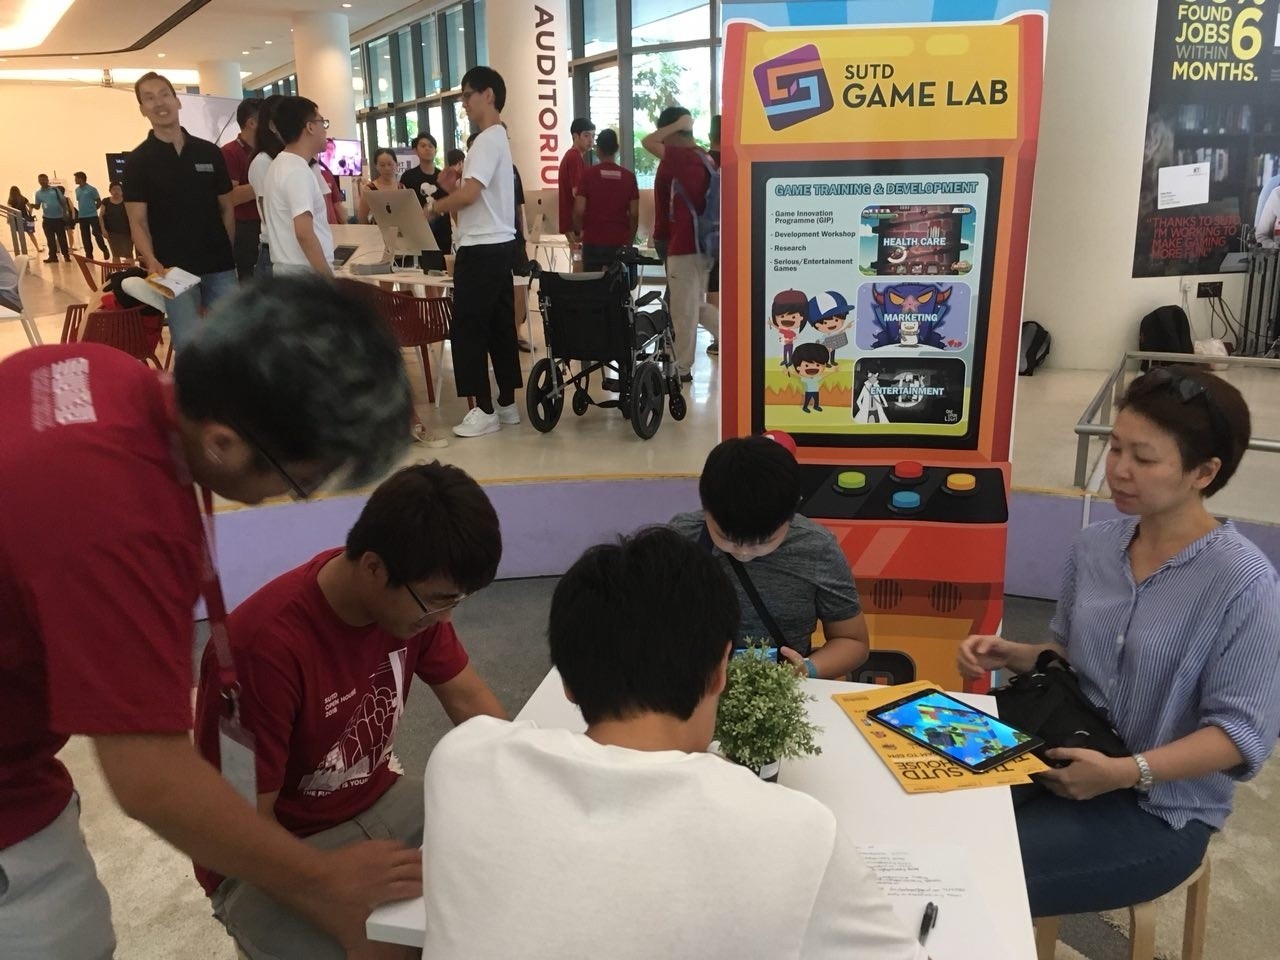 The SUTD Game Lab booth, where interested visitors got to try Kinetikos out! Check out our review here